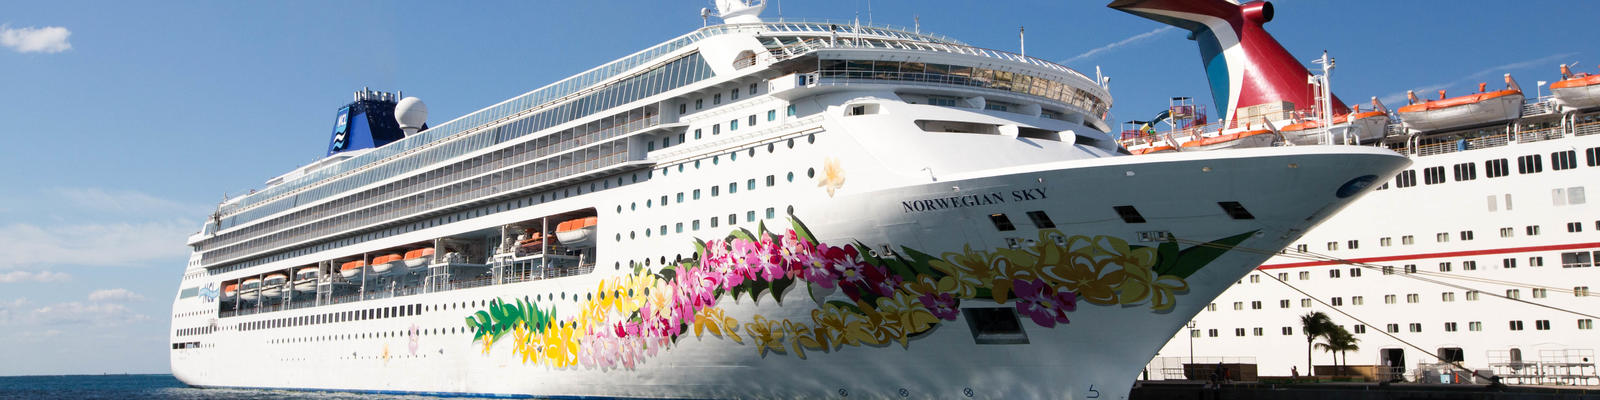 11 Types of Cruise Ship Jobs That Fit Your Interests (Photo: Cruise Critic)